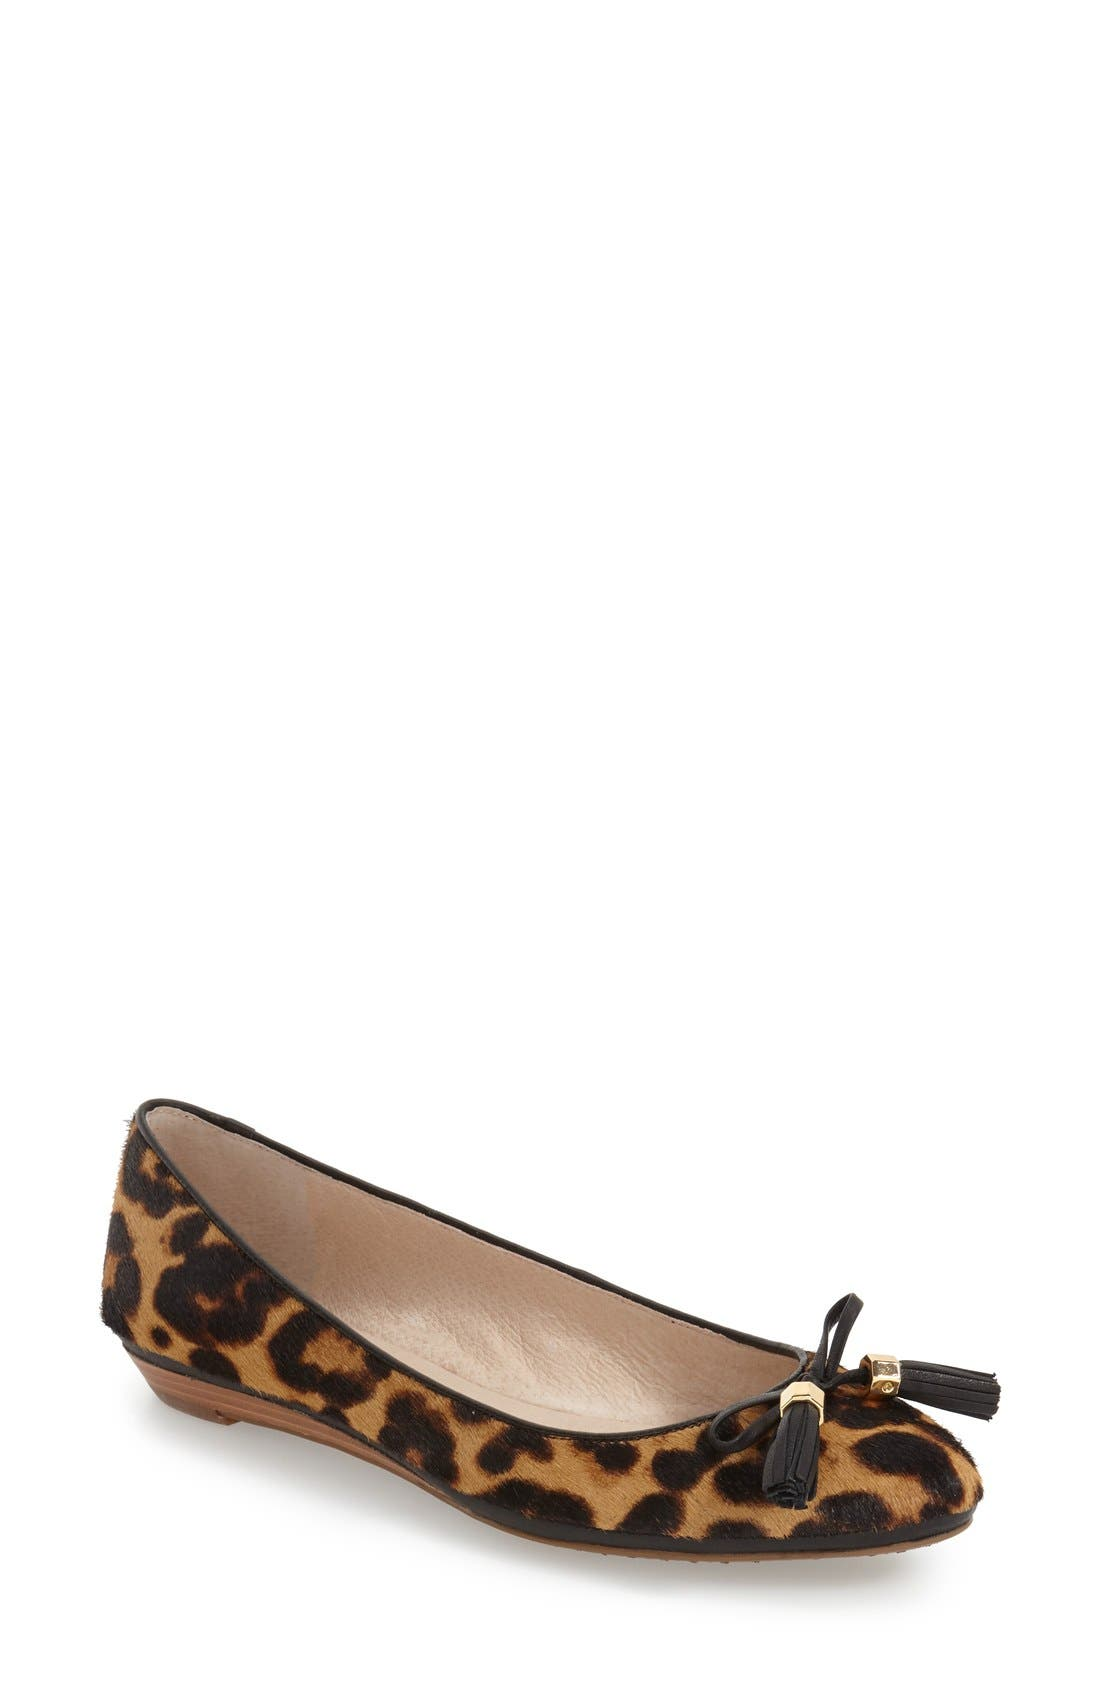 Main Image - Louise et Cie 'Aradella' Genuine Calf Hair Pointy Toe Flat (Women) (Nordstrom Exclusive)